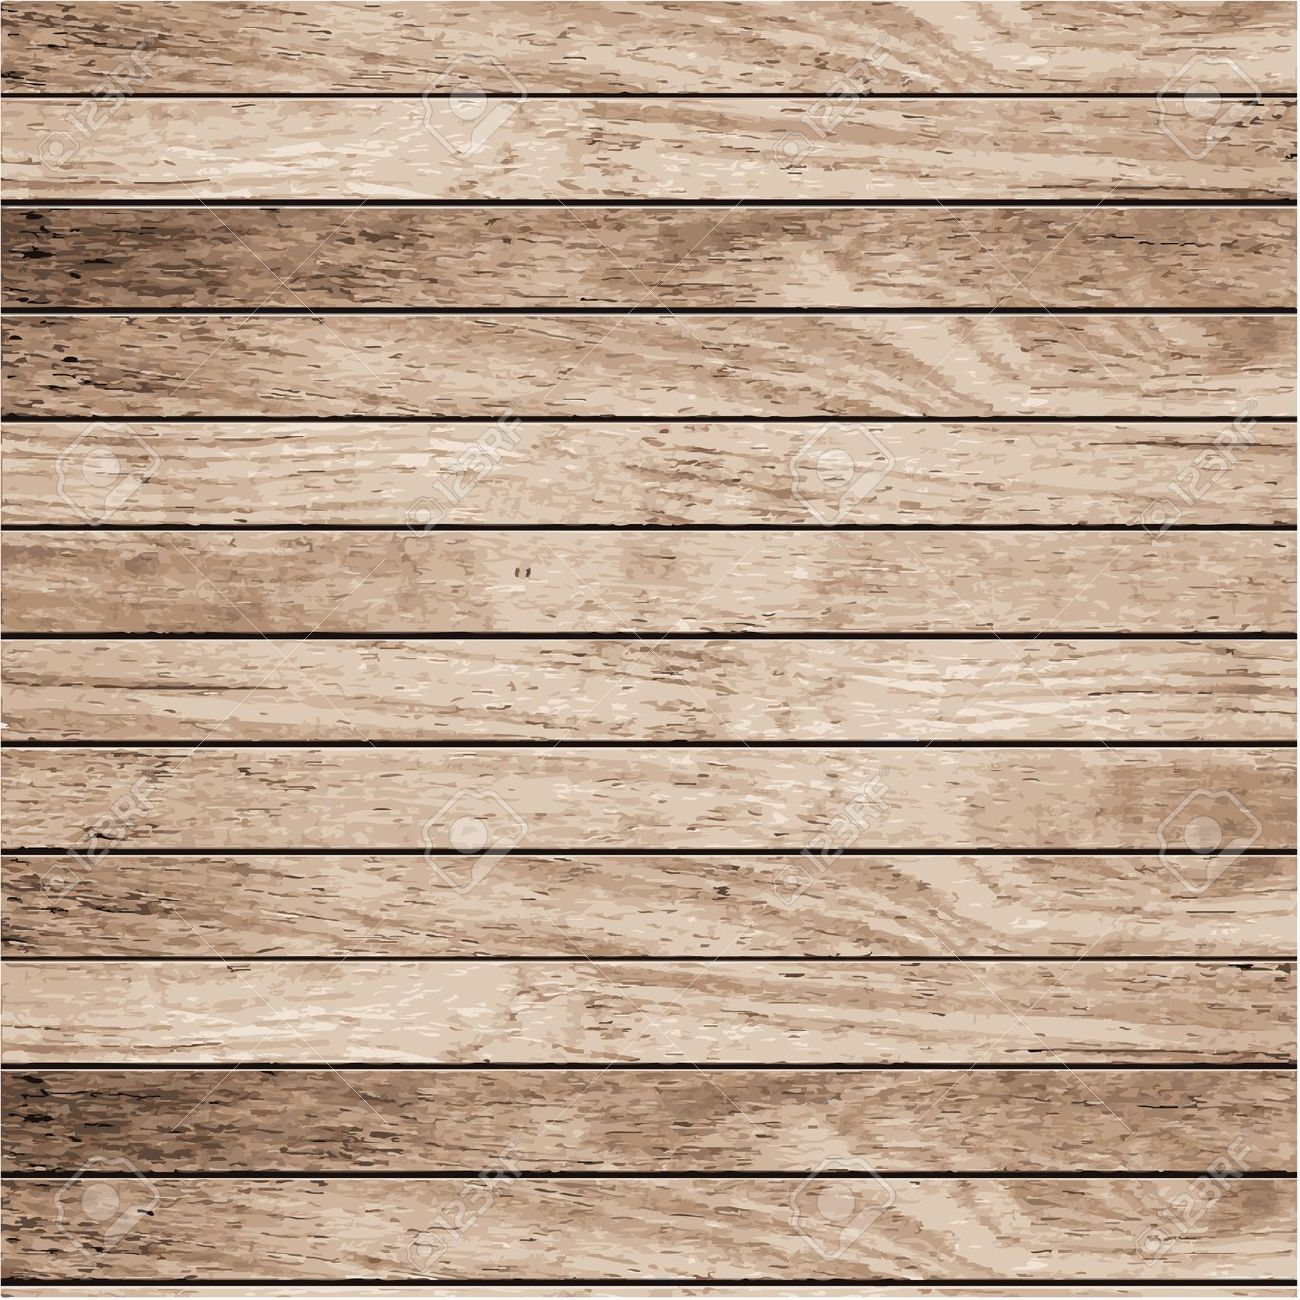 White wood effect clipart.